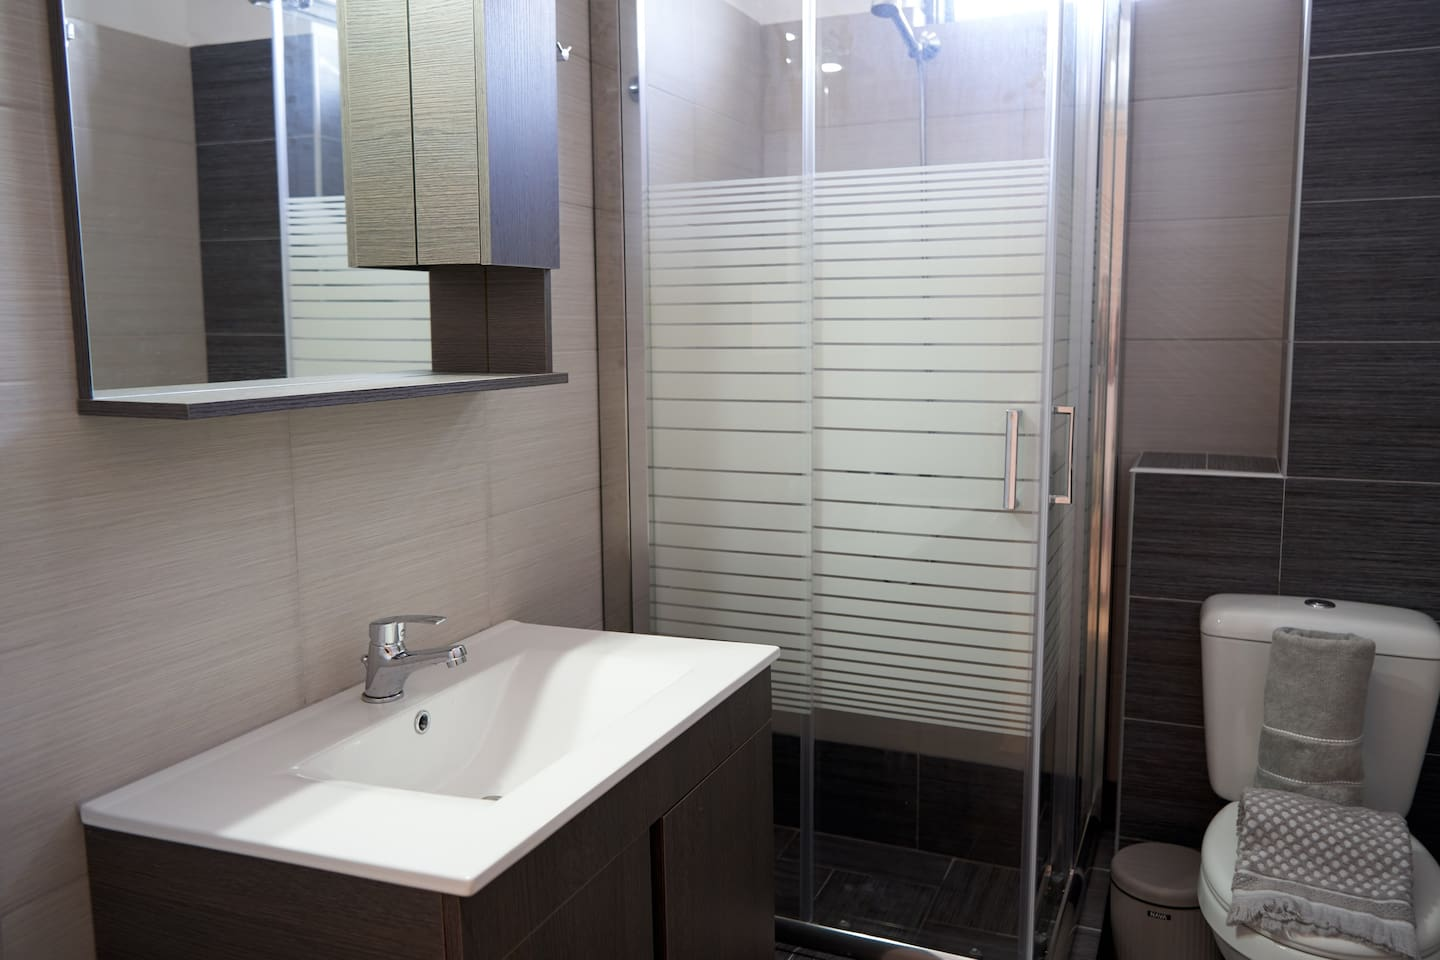 Brand new and comfortable bathroom with shower, sink, toilet and boiler for hot water